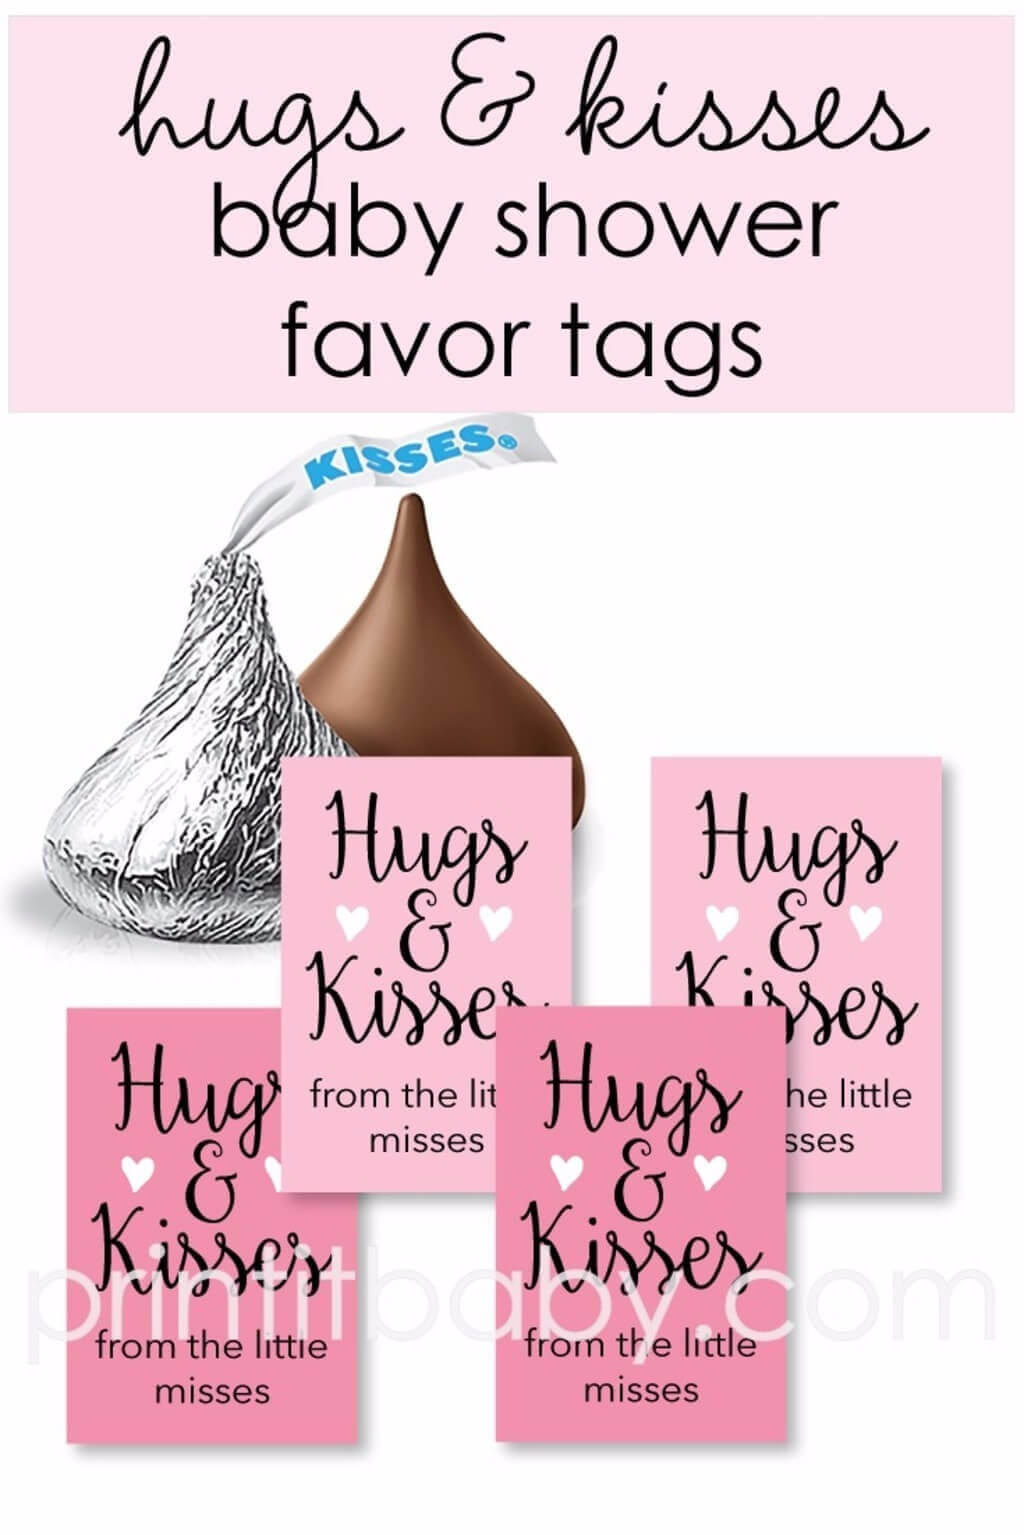 Free Favor Tags For Parties | CutestBabyShowers.com